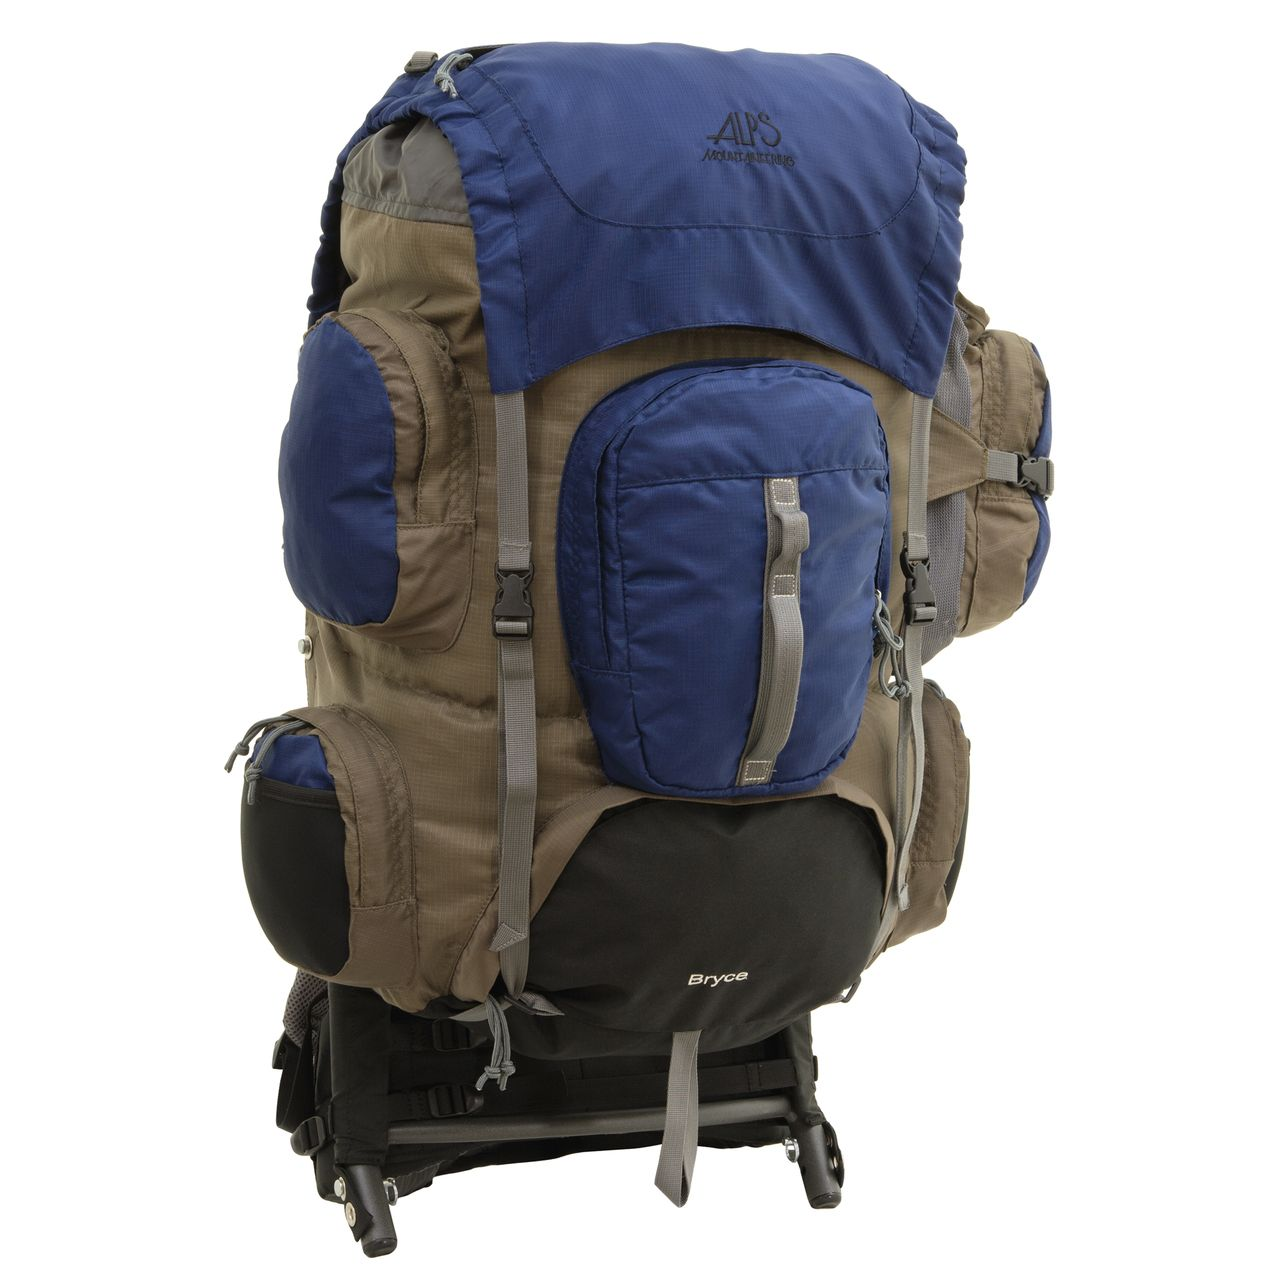 Alps Mountaineering Bryce External Frame Backpack 3600 | Camping ...